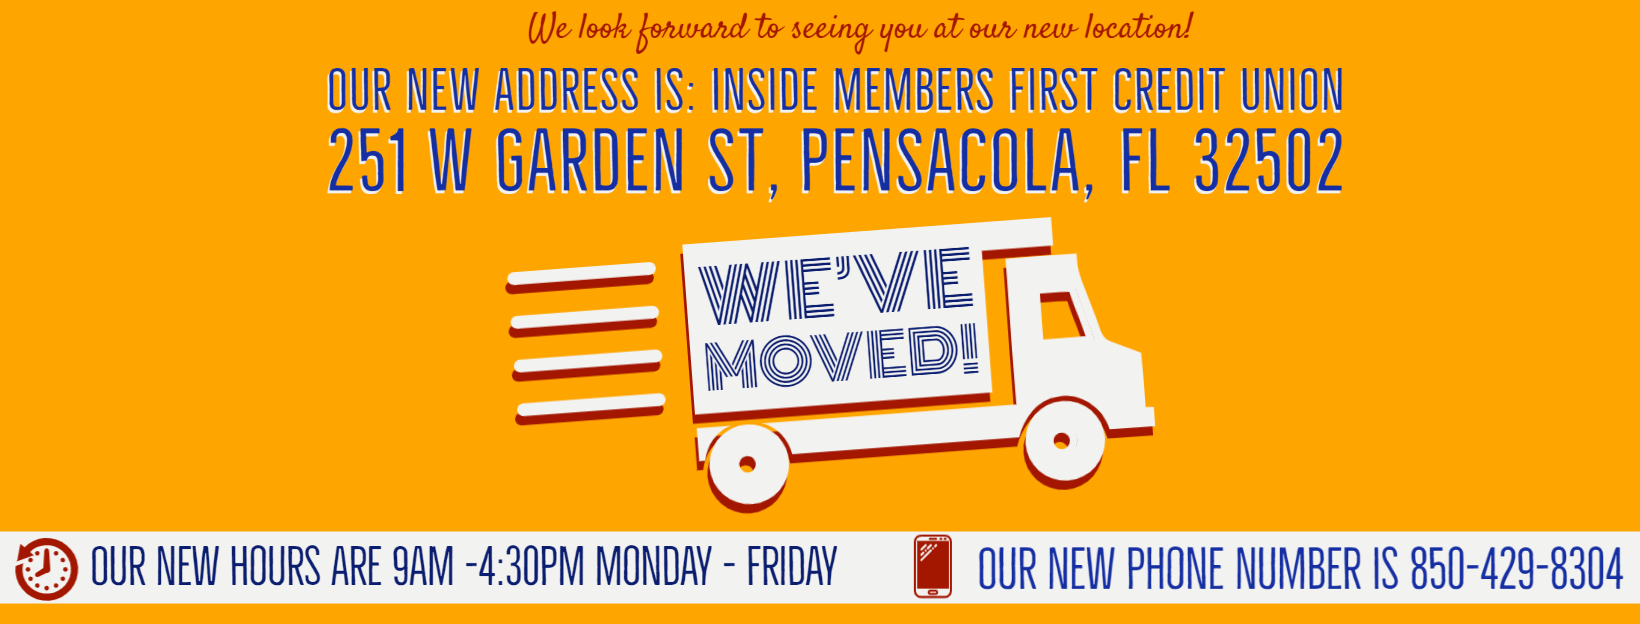 Our Downtown Office Has Moved!